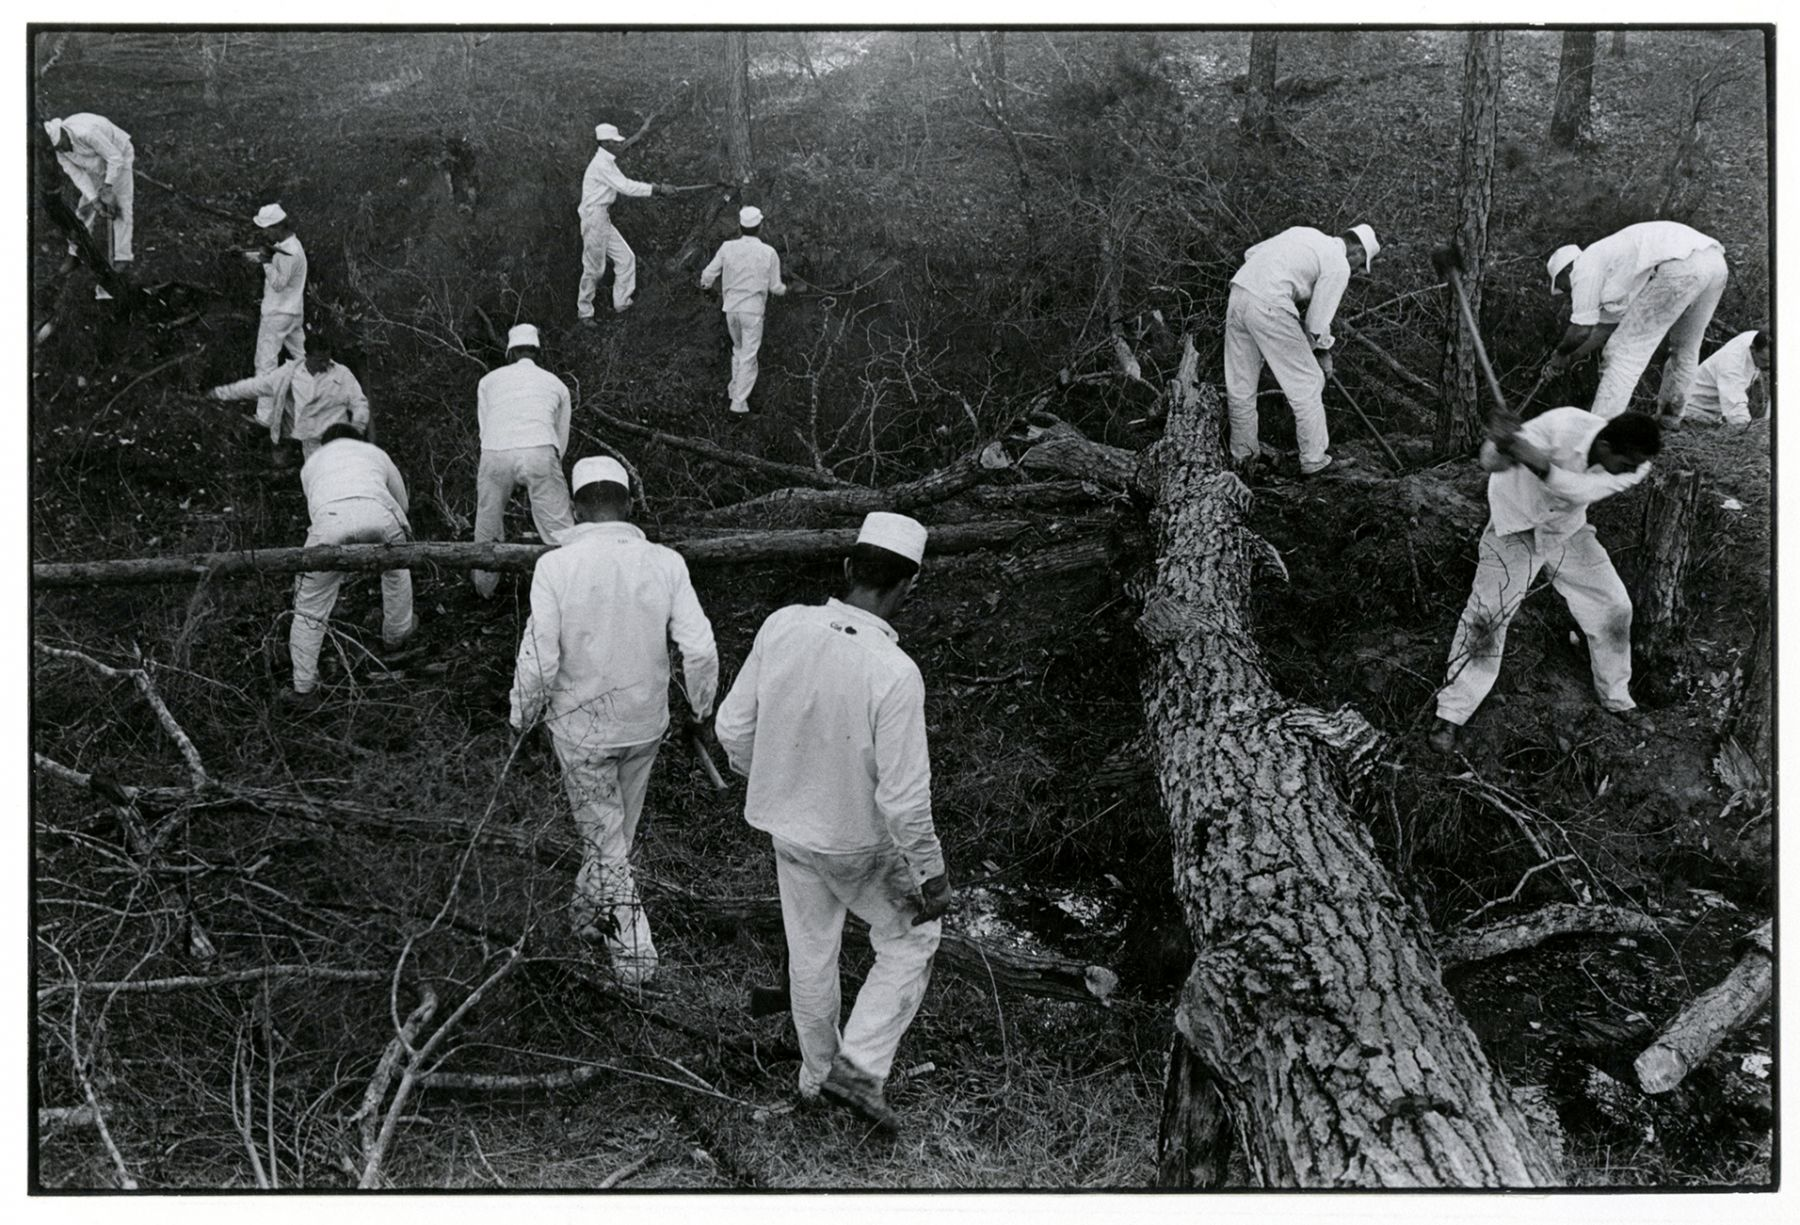 Copyright Danny Lyon / Magnum Photos, The Ellis Woods, from Conversations with the Dead, 1968